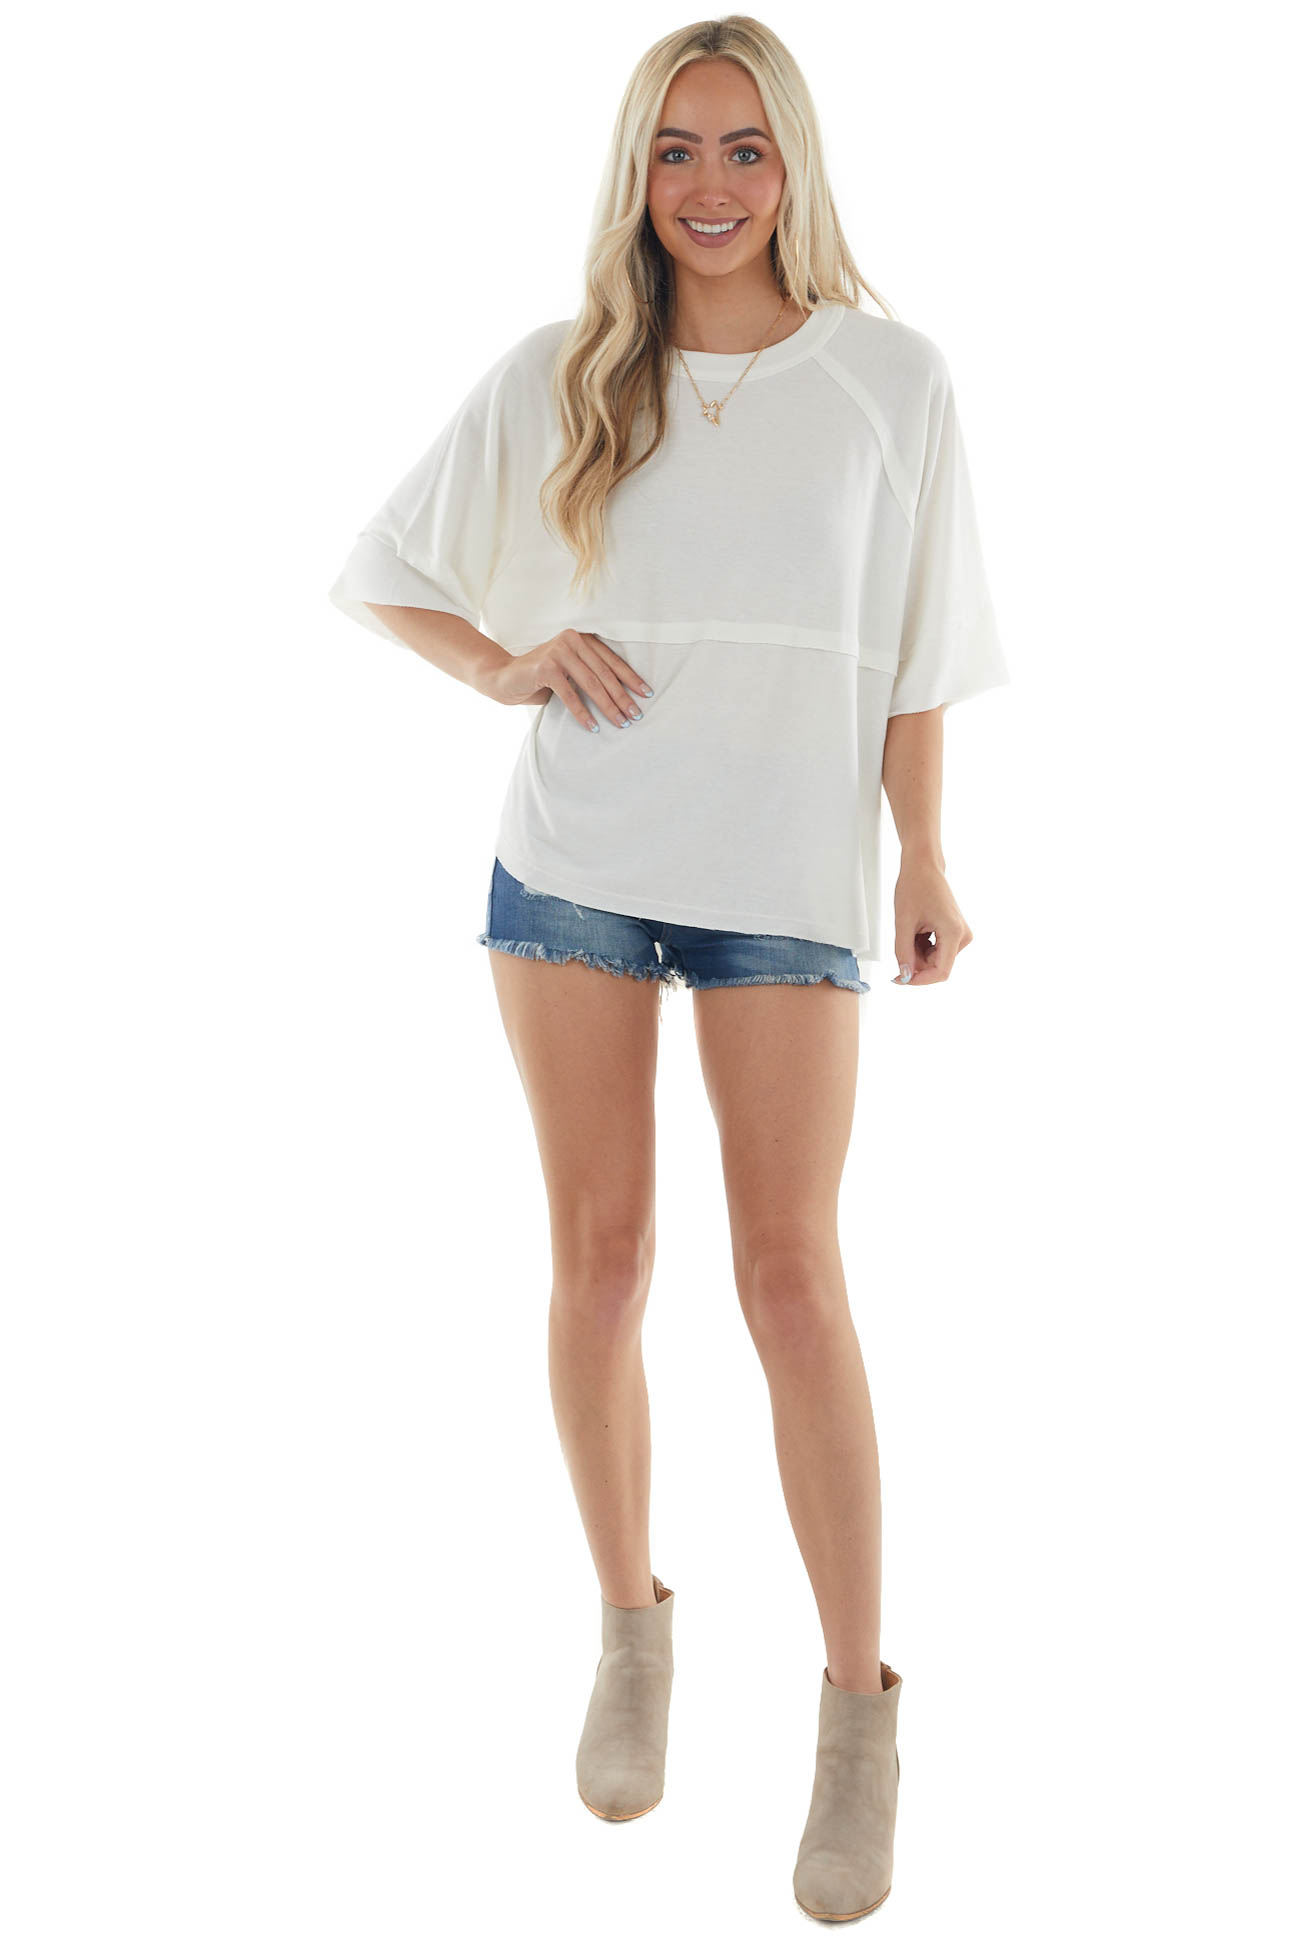 Eggshell Flowy Knit Top with Raw Edge Details